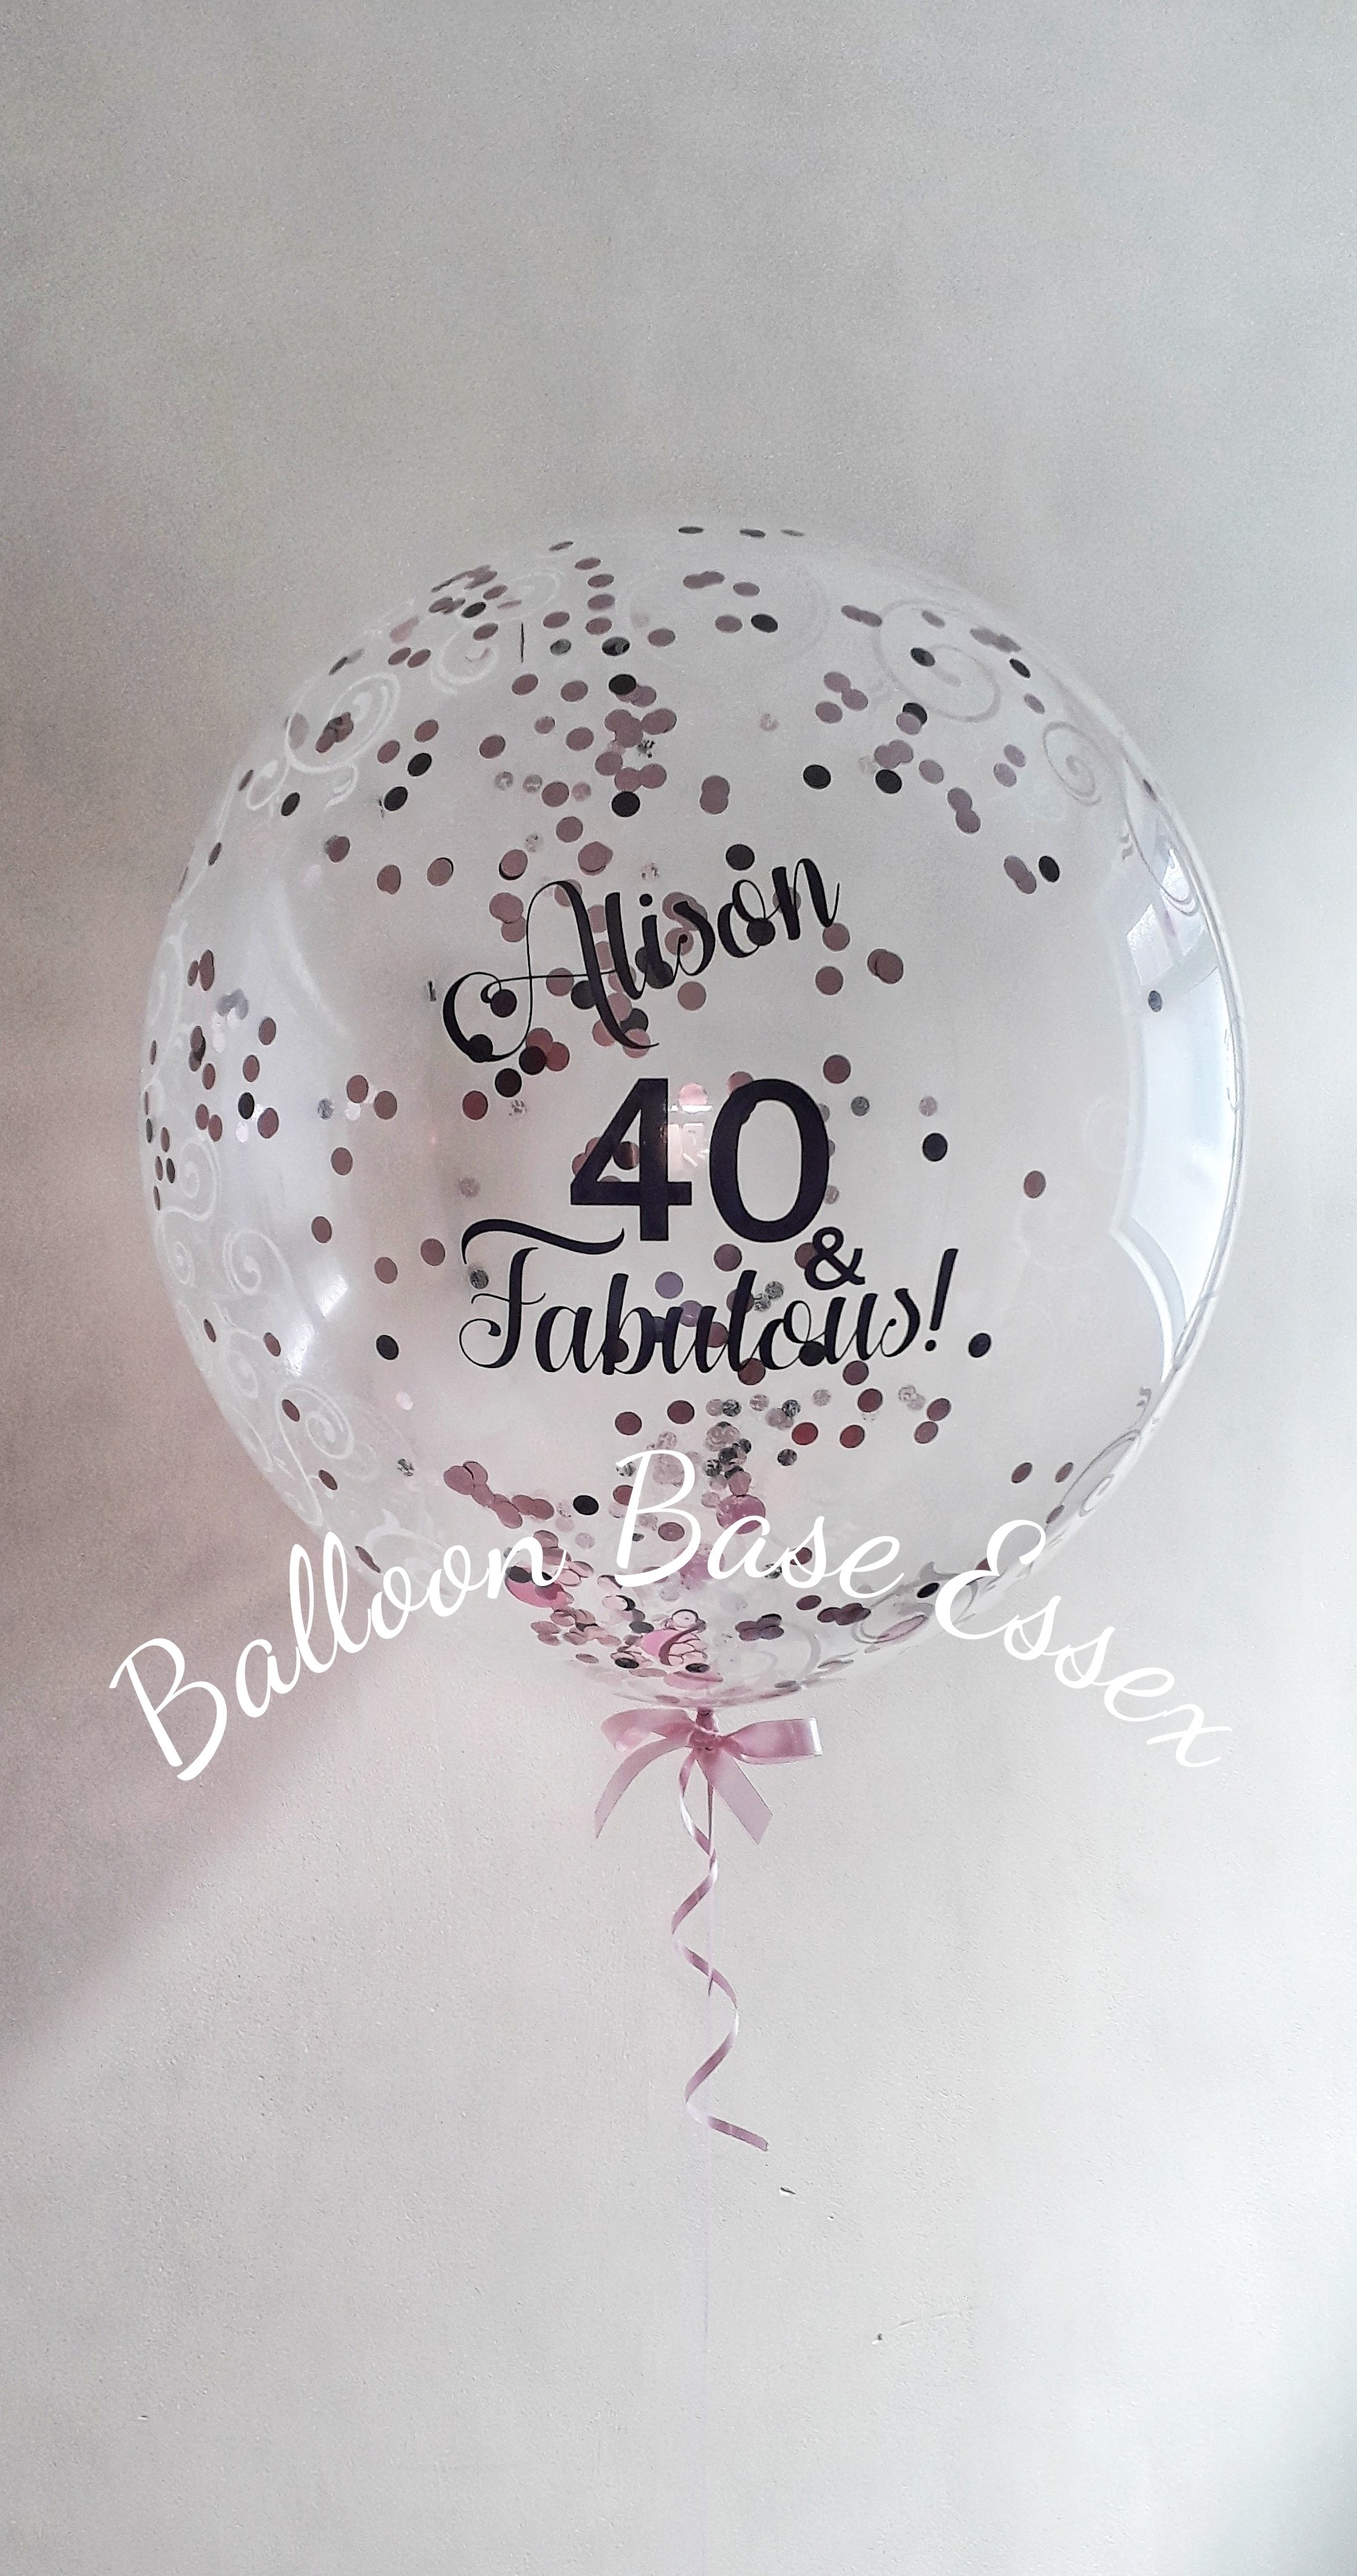 Clear 40th birthday balloon with round confetti